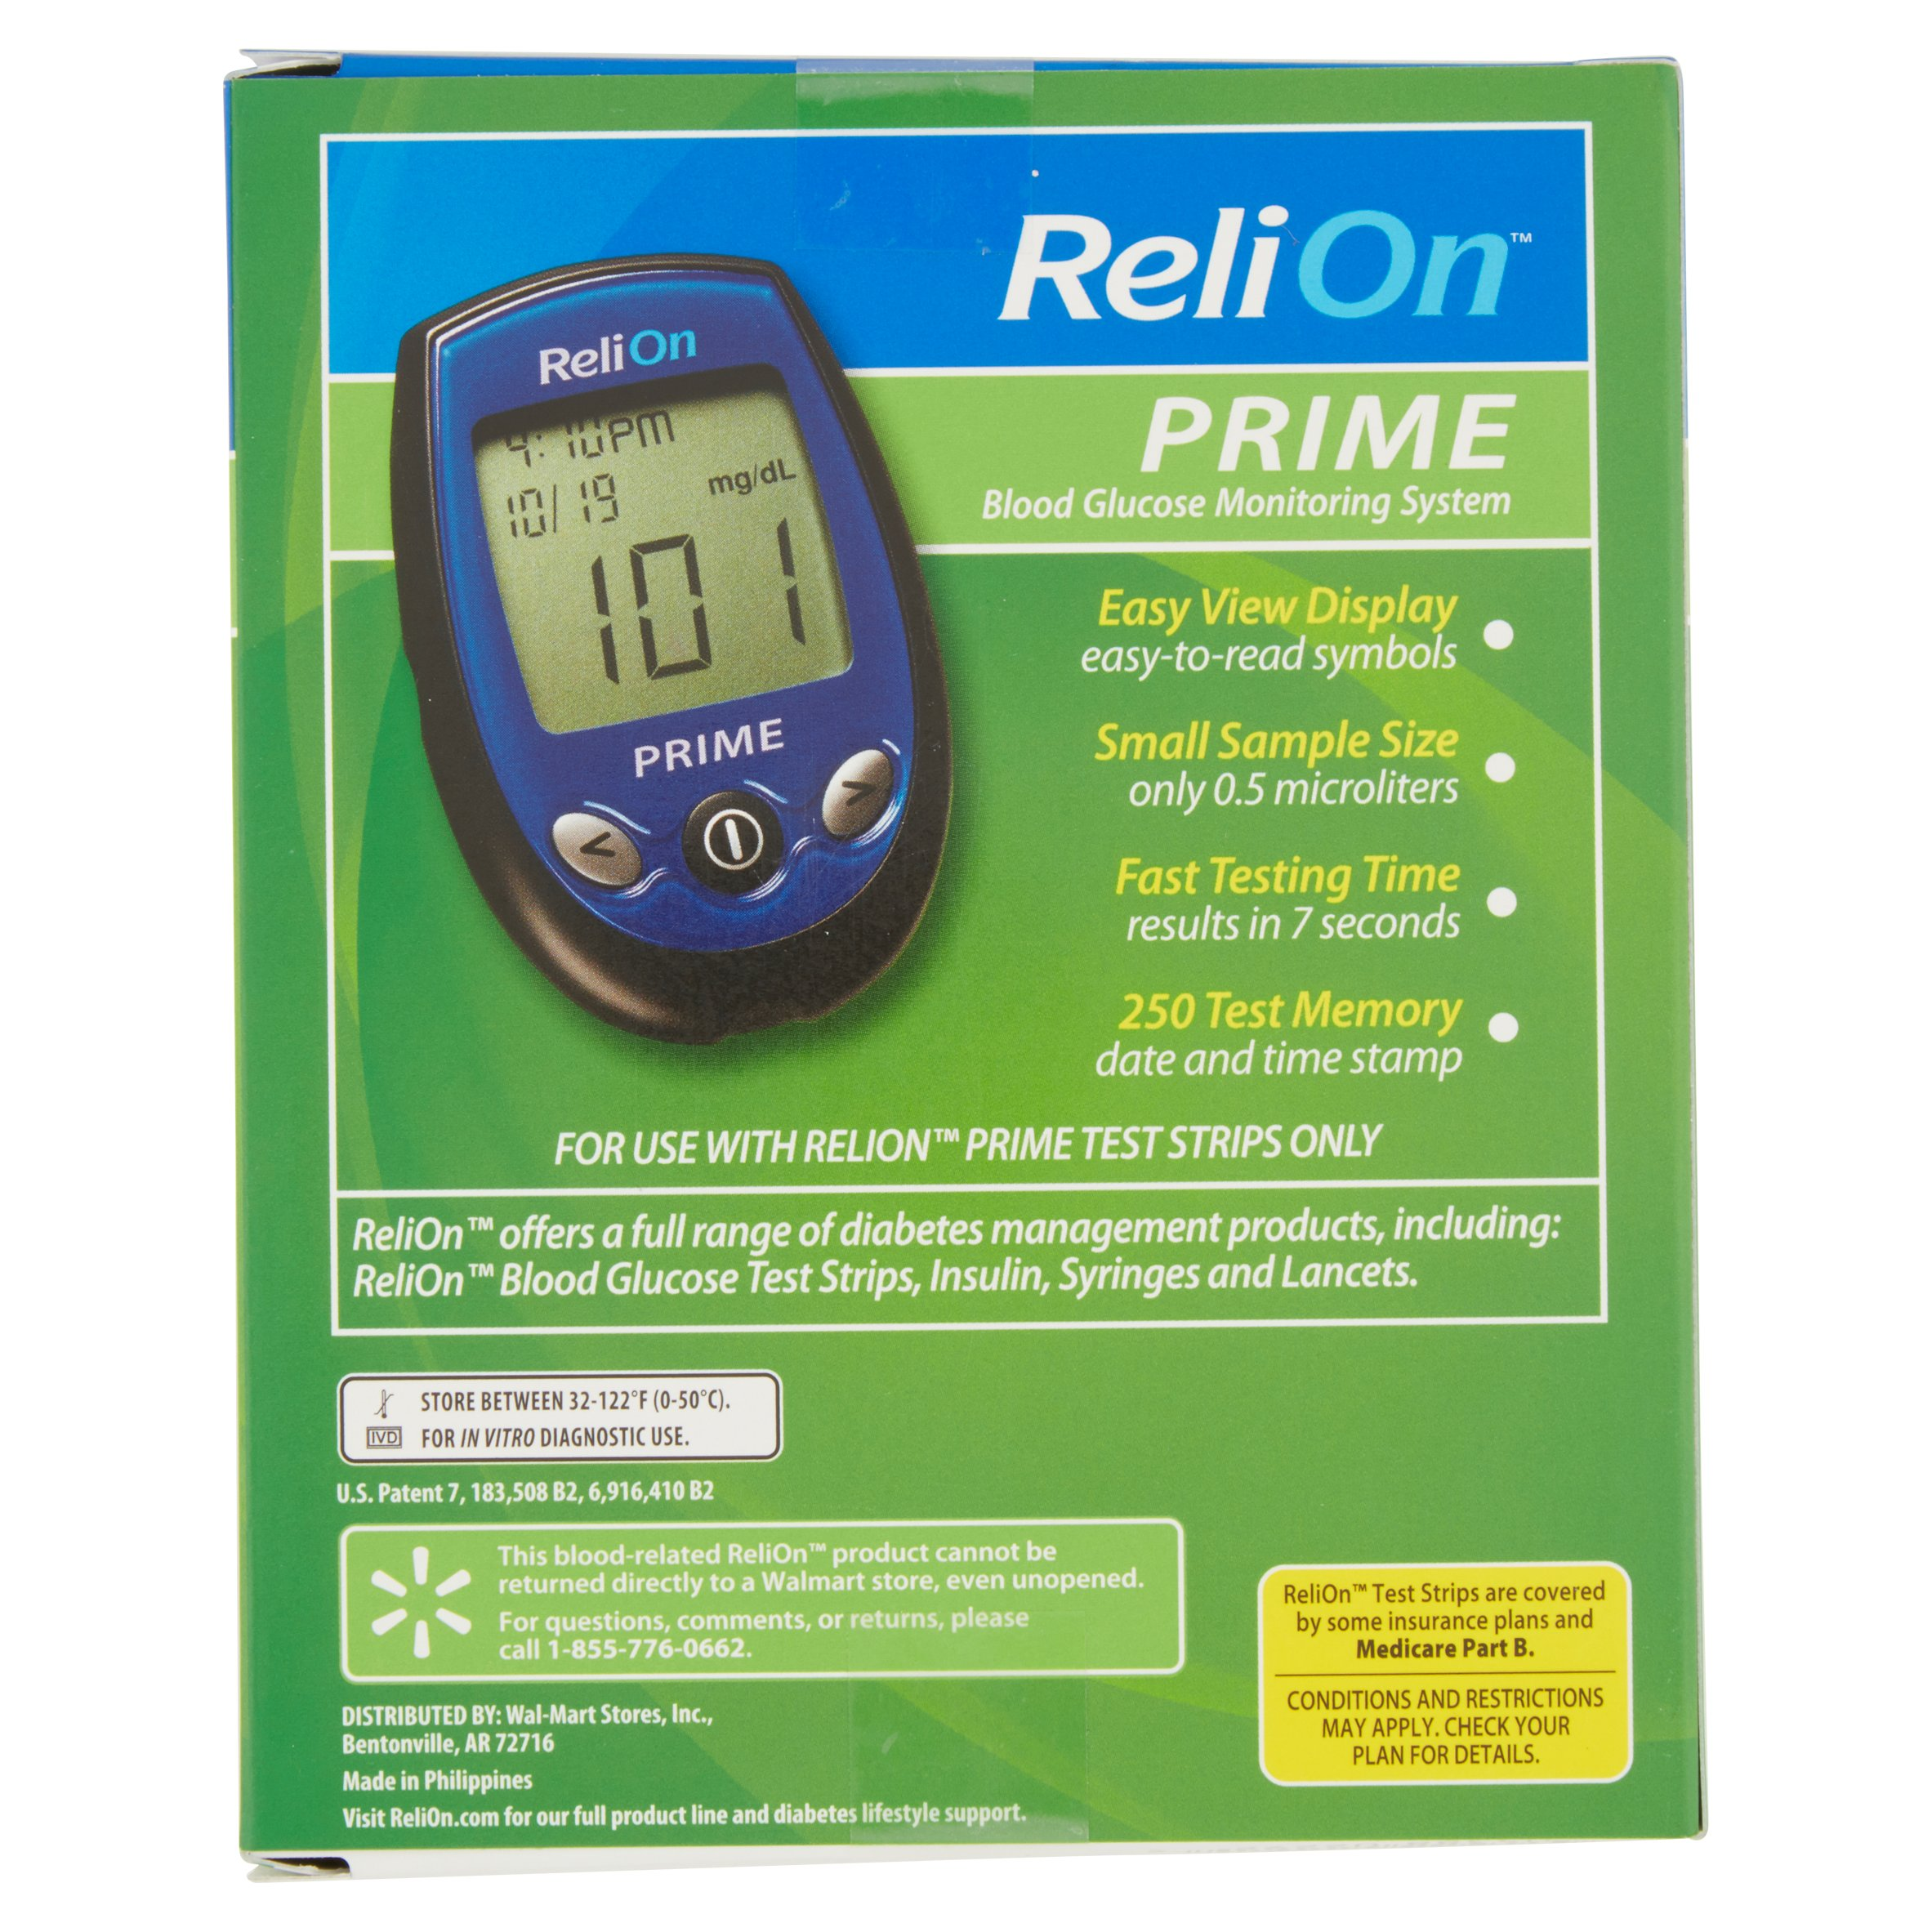 relion prime blood glucose monitoring system blue com